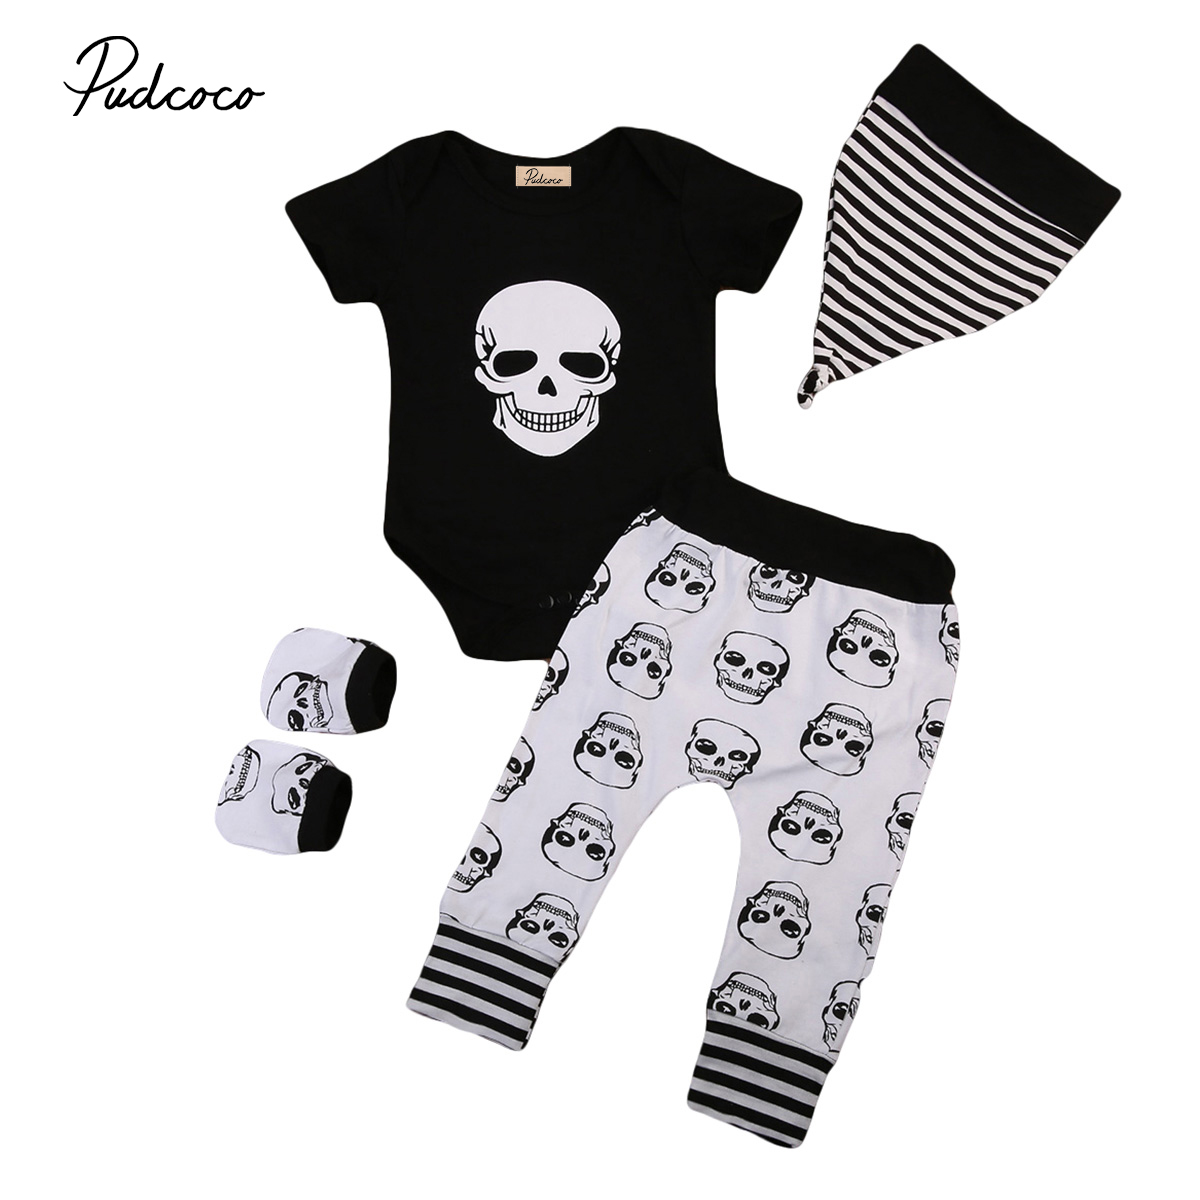 Novelty Newborn Baby Boy SKull Outfits Clothes Black Romper Tops Jumpsuit Long Pants Leggings Hats Gloves 4pcs Clothing Set